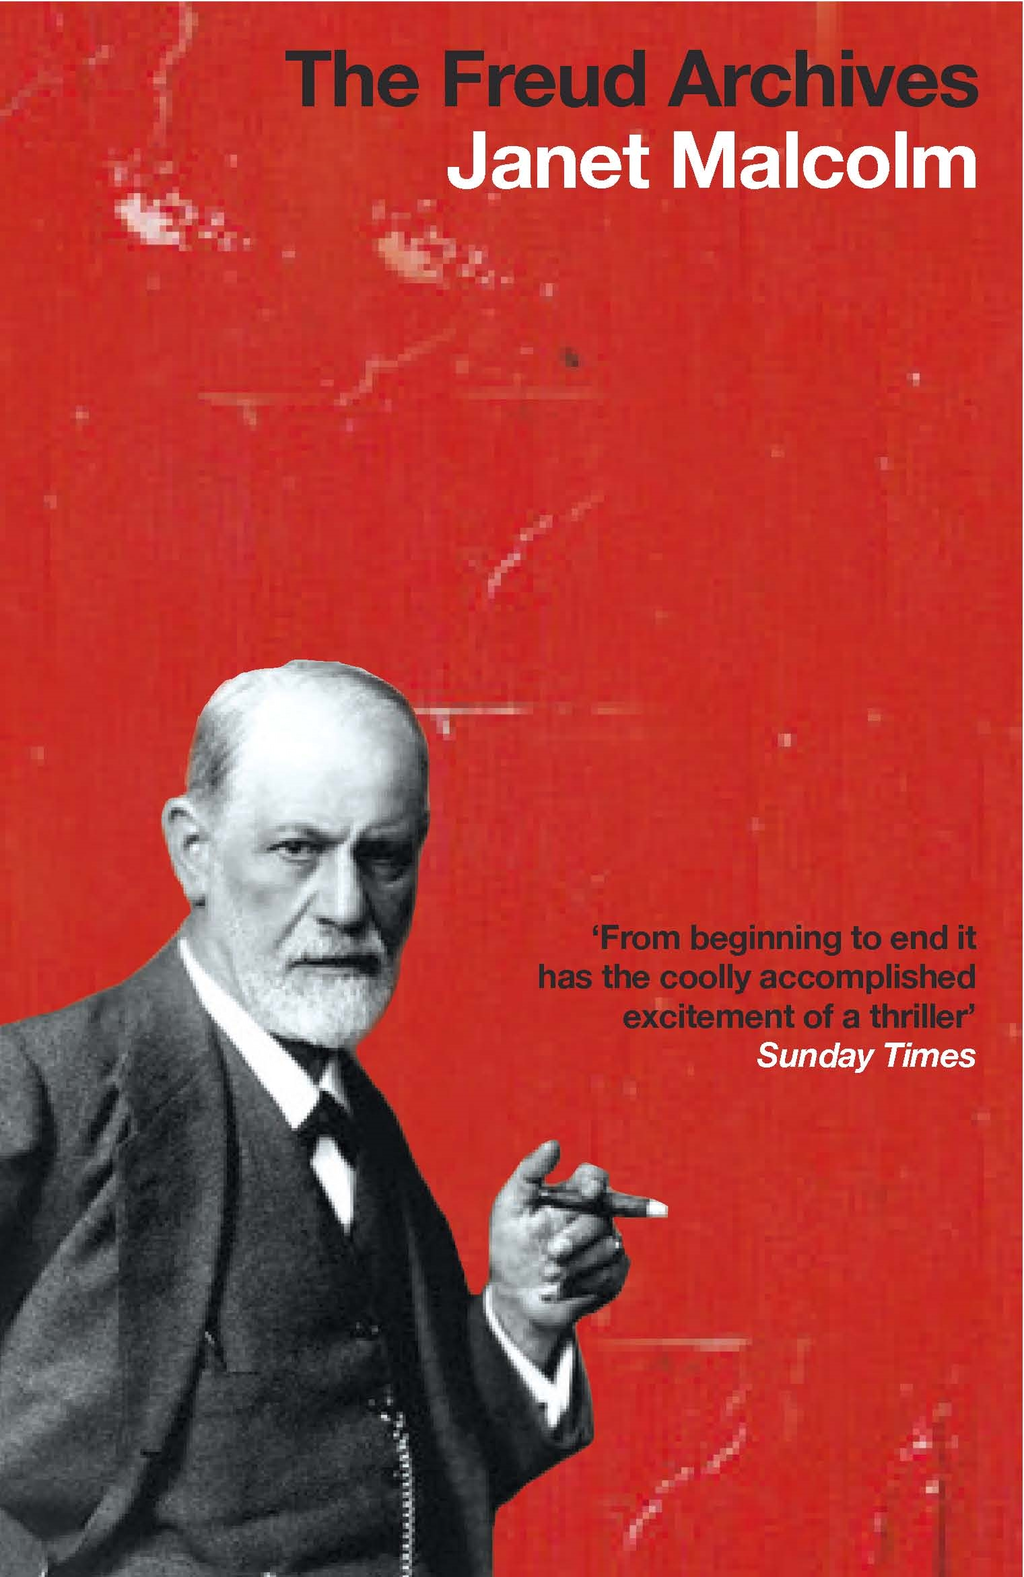 In The Freud Archives